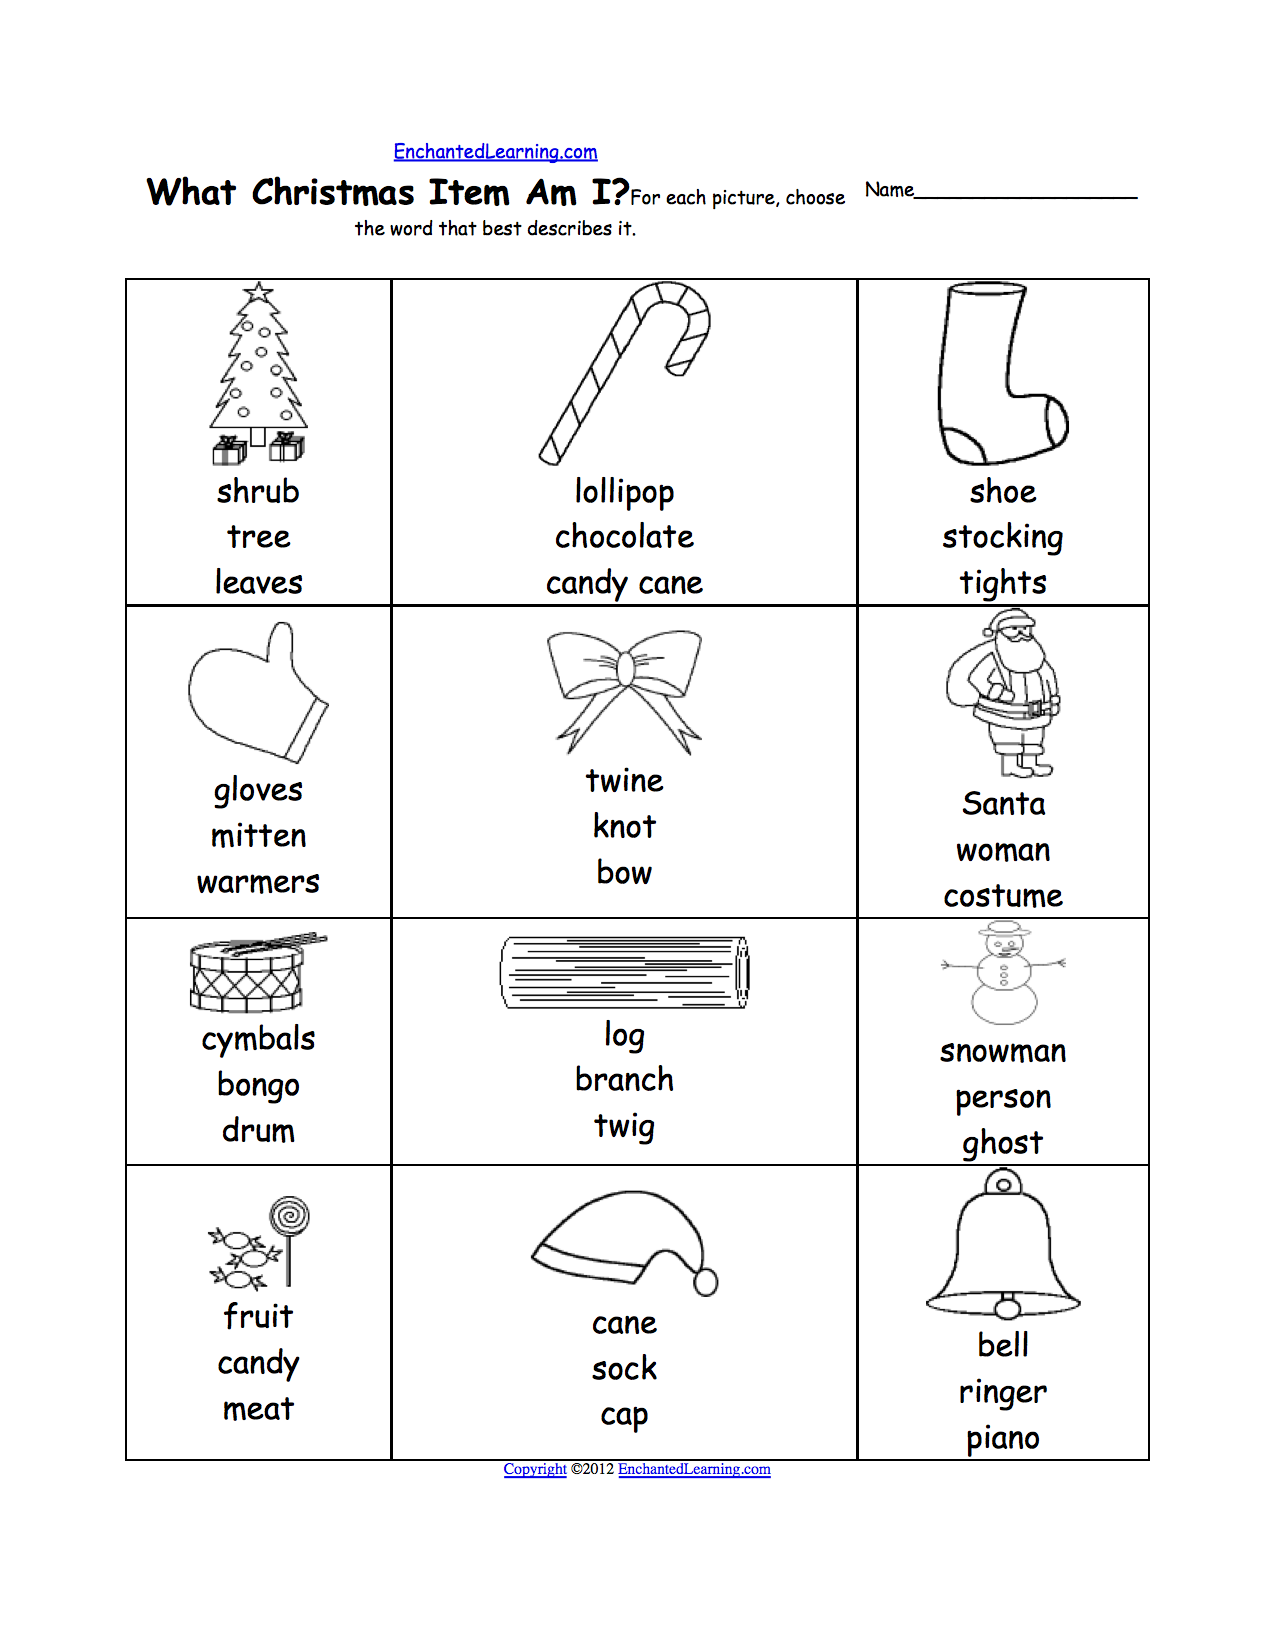 Worksheets Christmas Worksheets christmas activities spelling worksheets enchantedlearning com